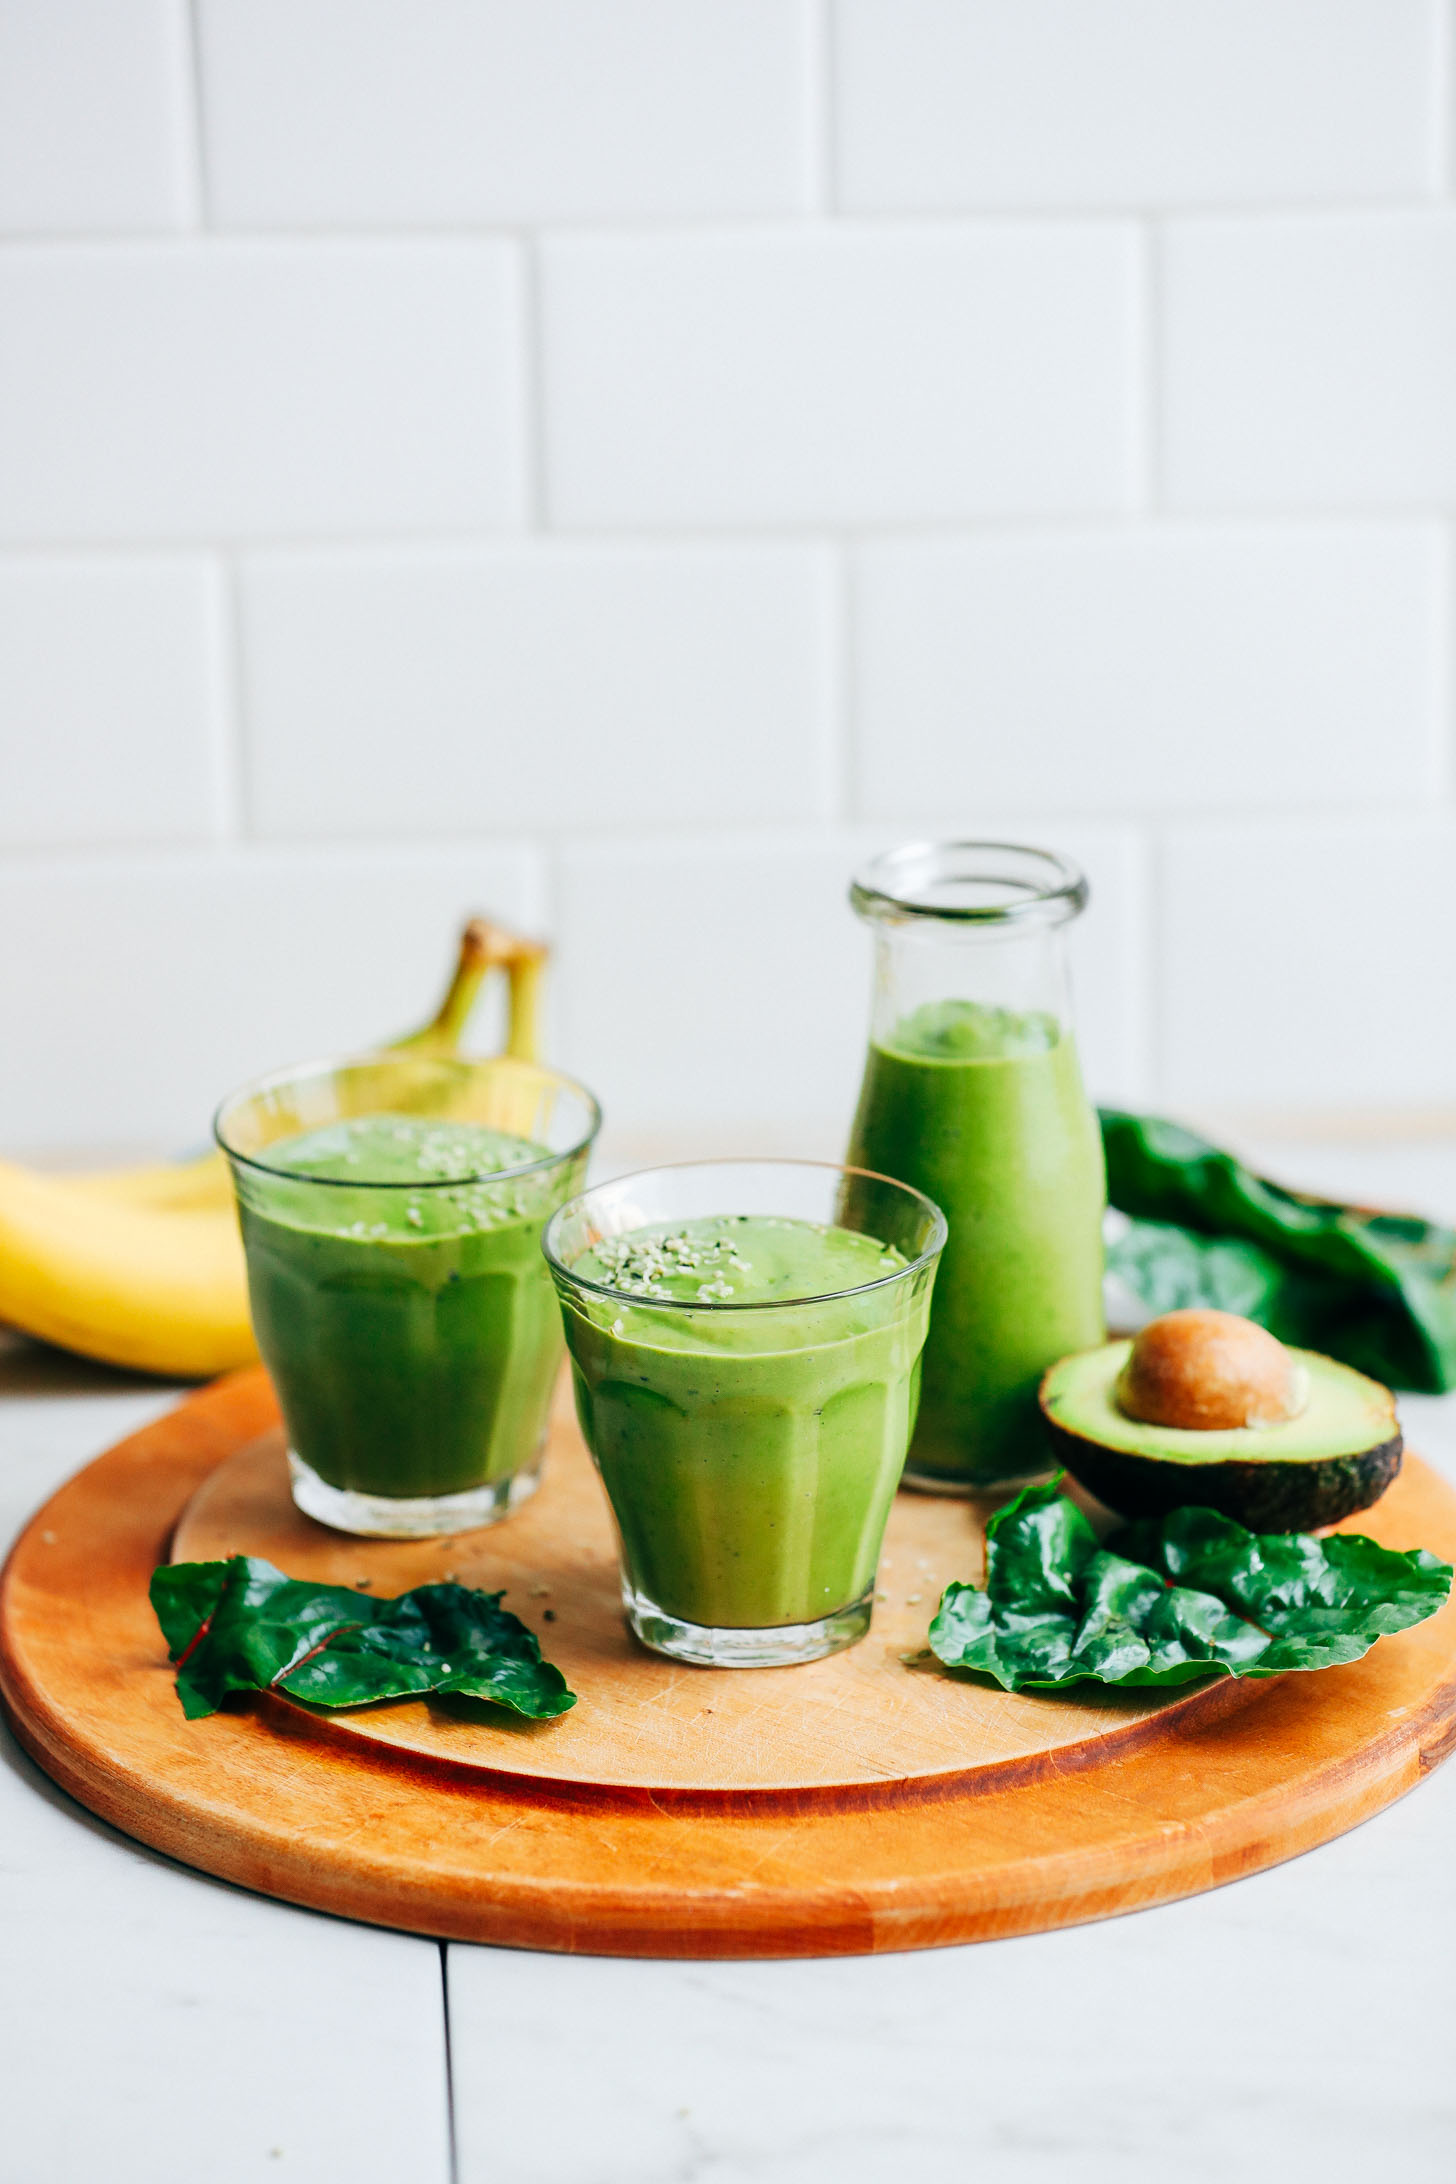 Two serving glasses filled with vibrant Avocado Green Smoothie and surrounded by avocado, banana, and kale